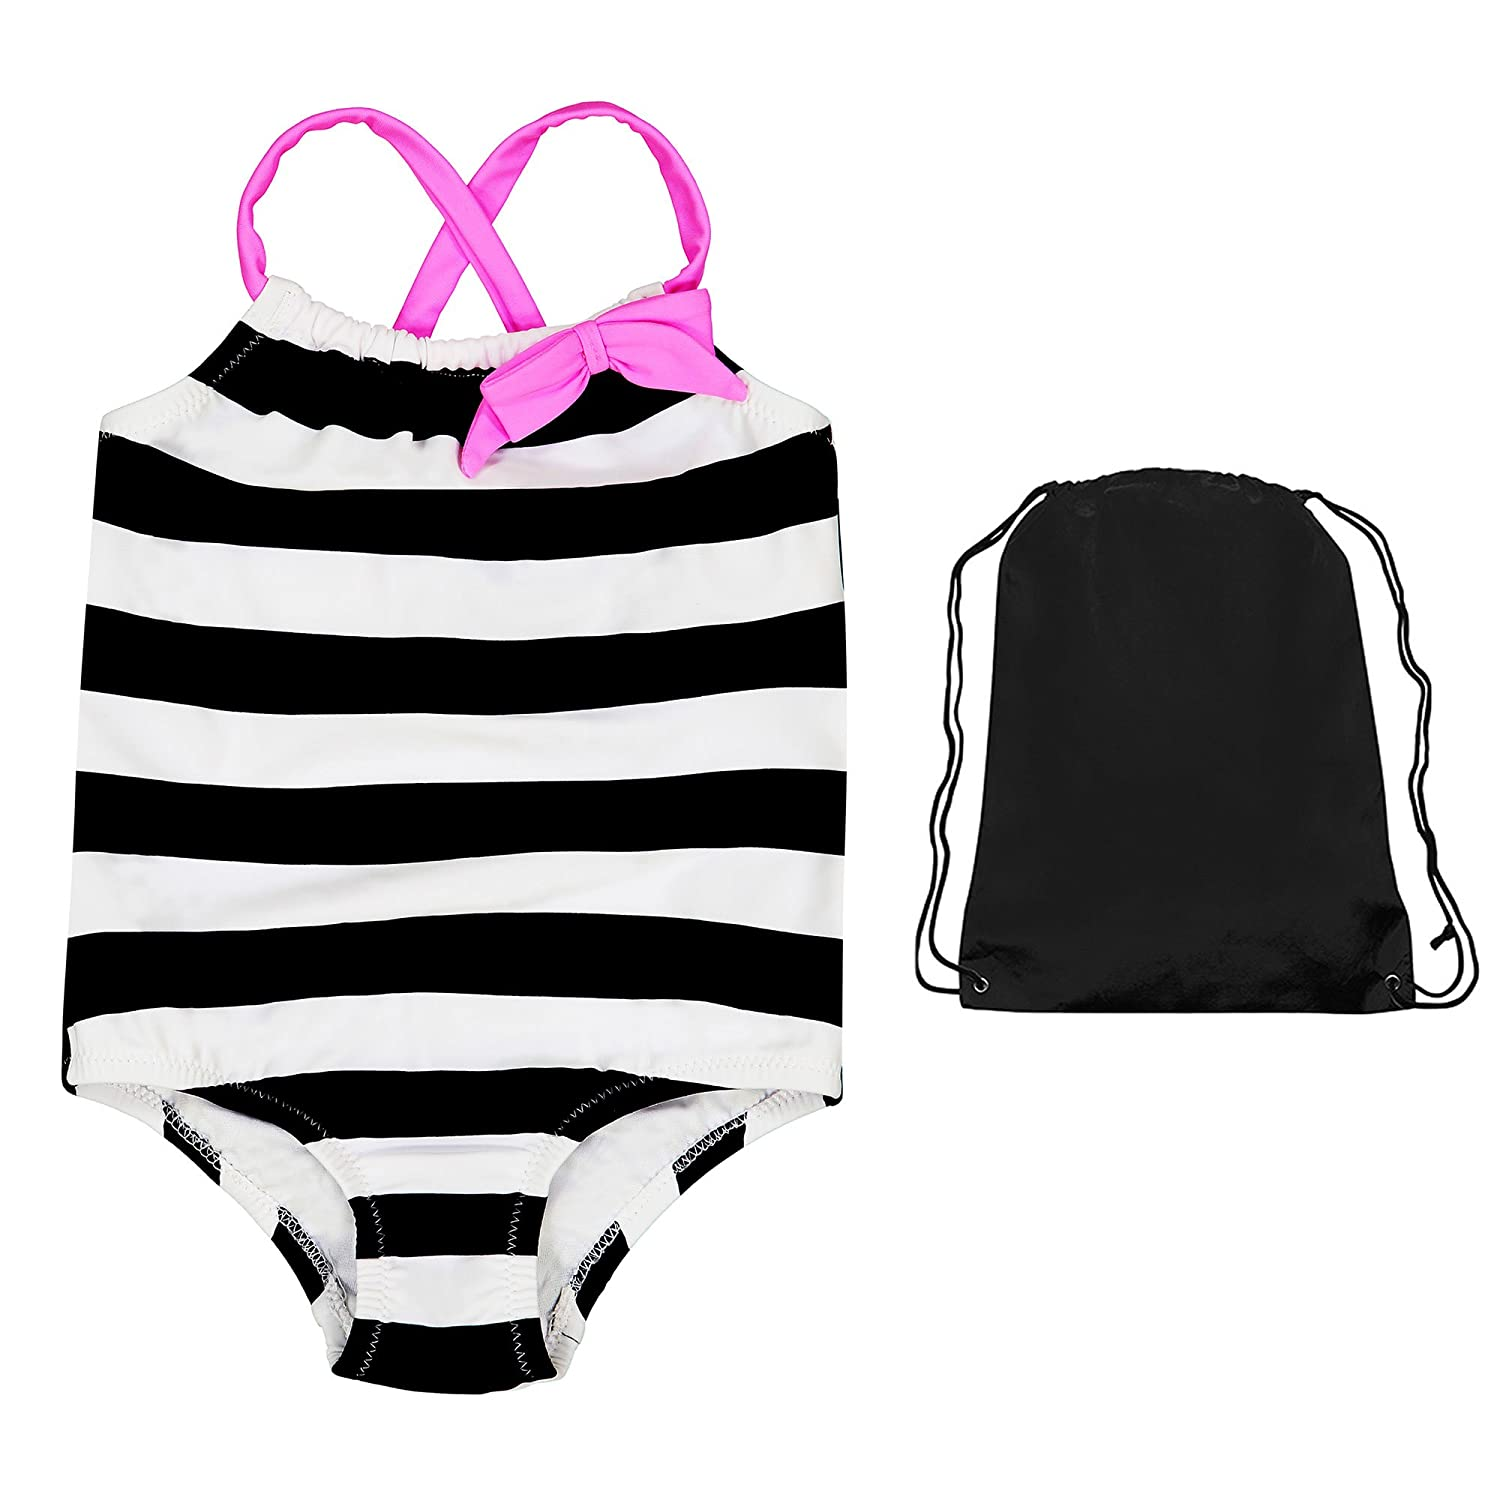 Kiko & Max UPF 50+ Sun Protection One Piece Swimsuit Swimwear and Drawstring Bag